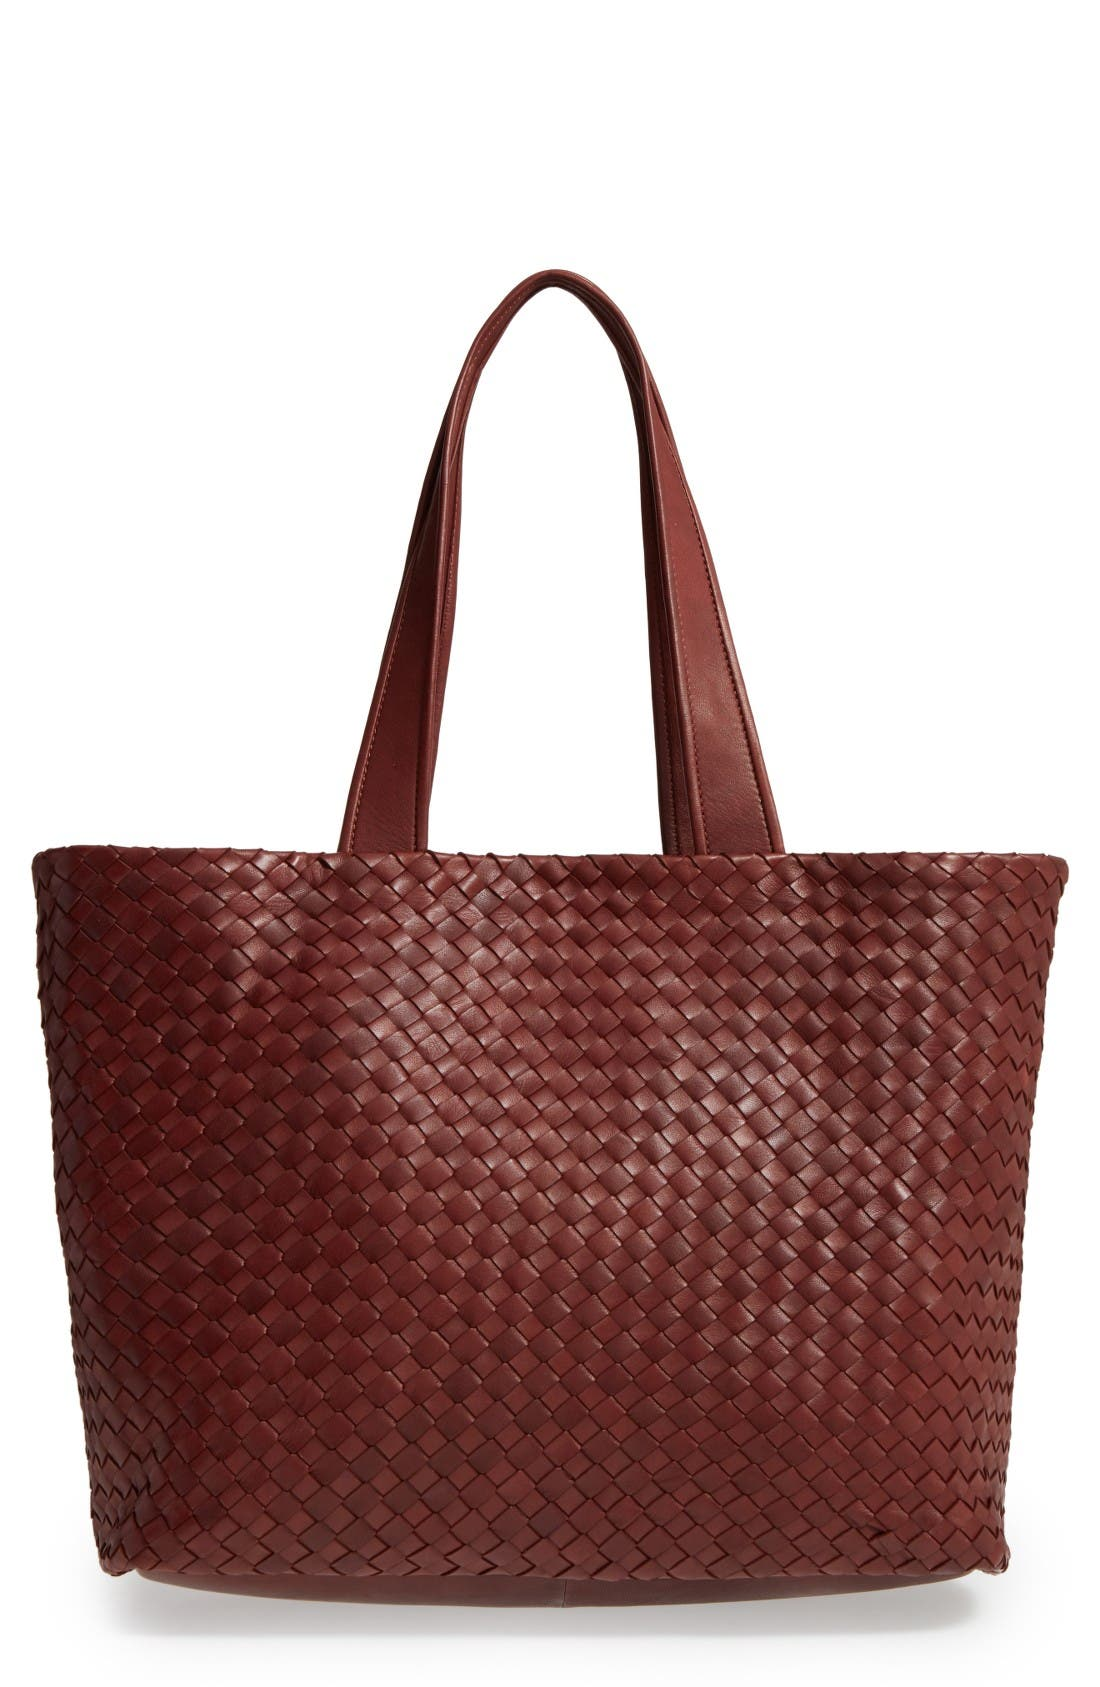 Robert Zur Rina Leather Tote